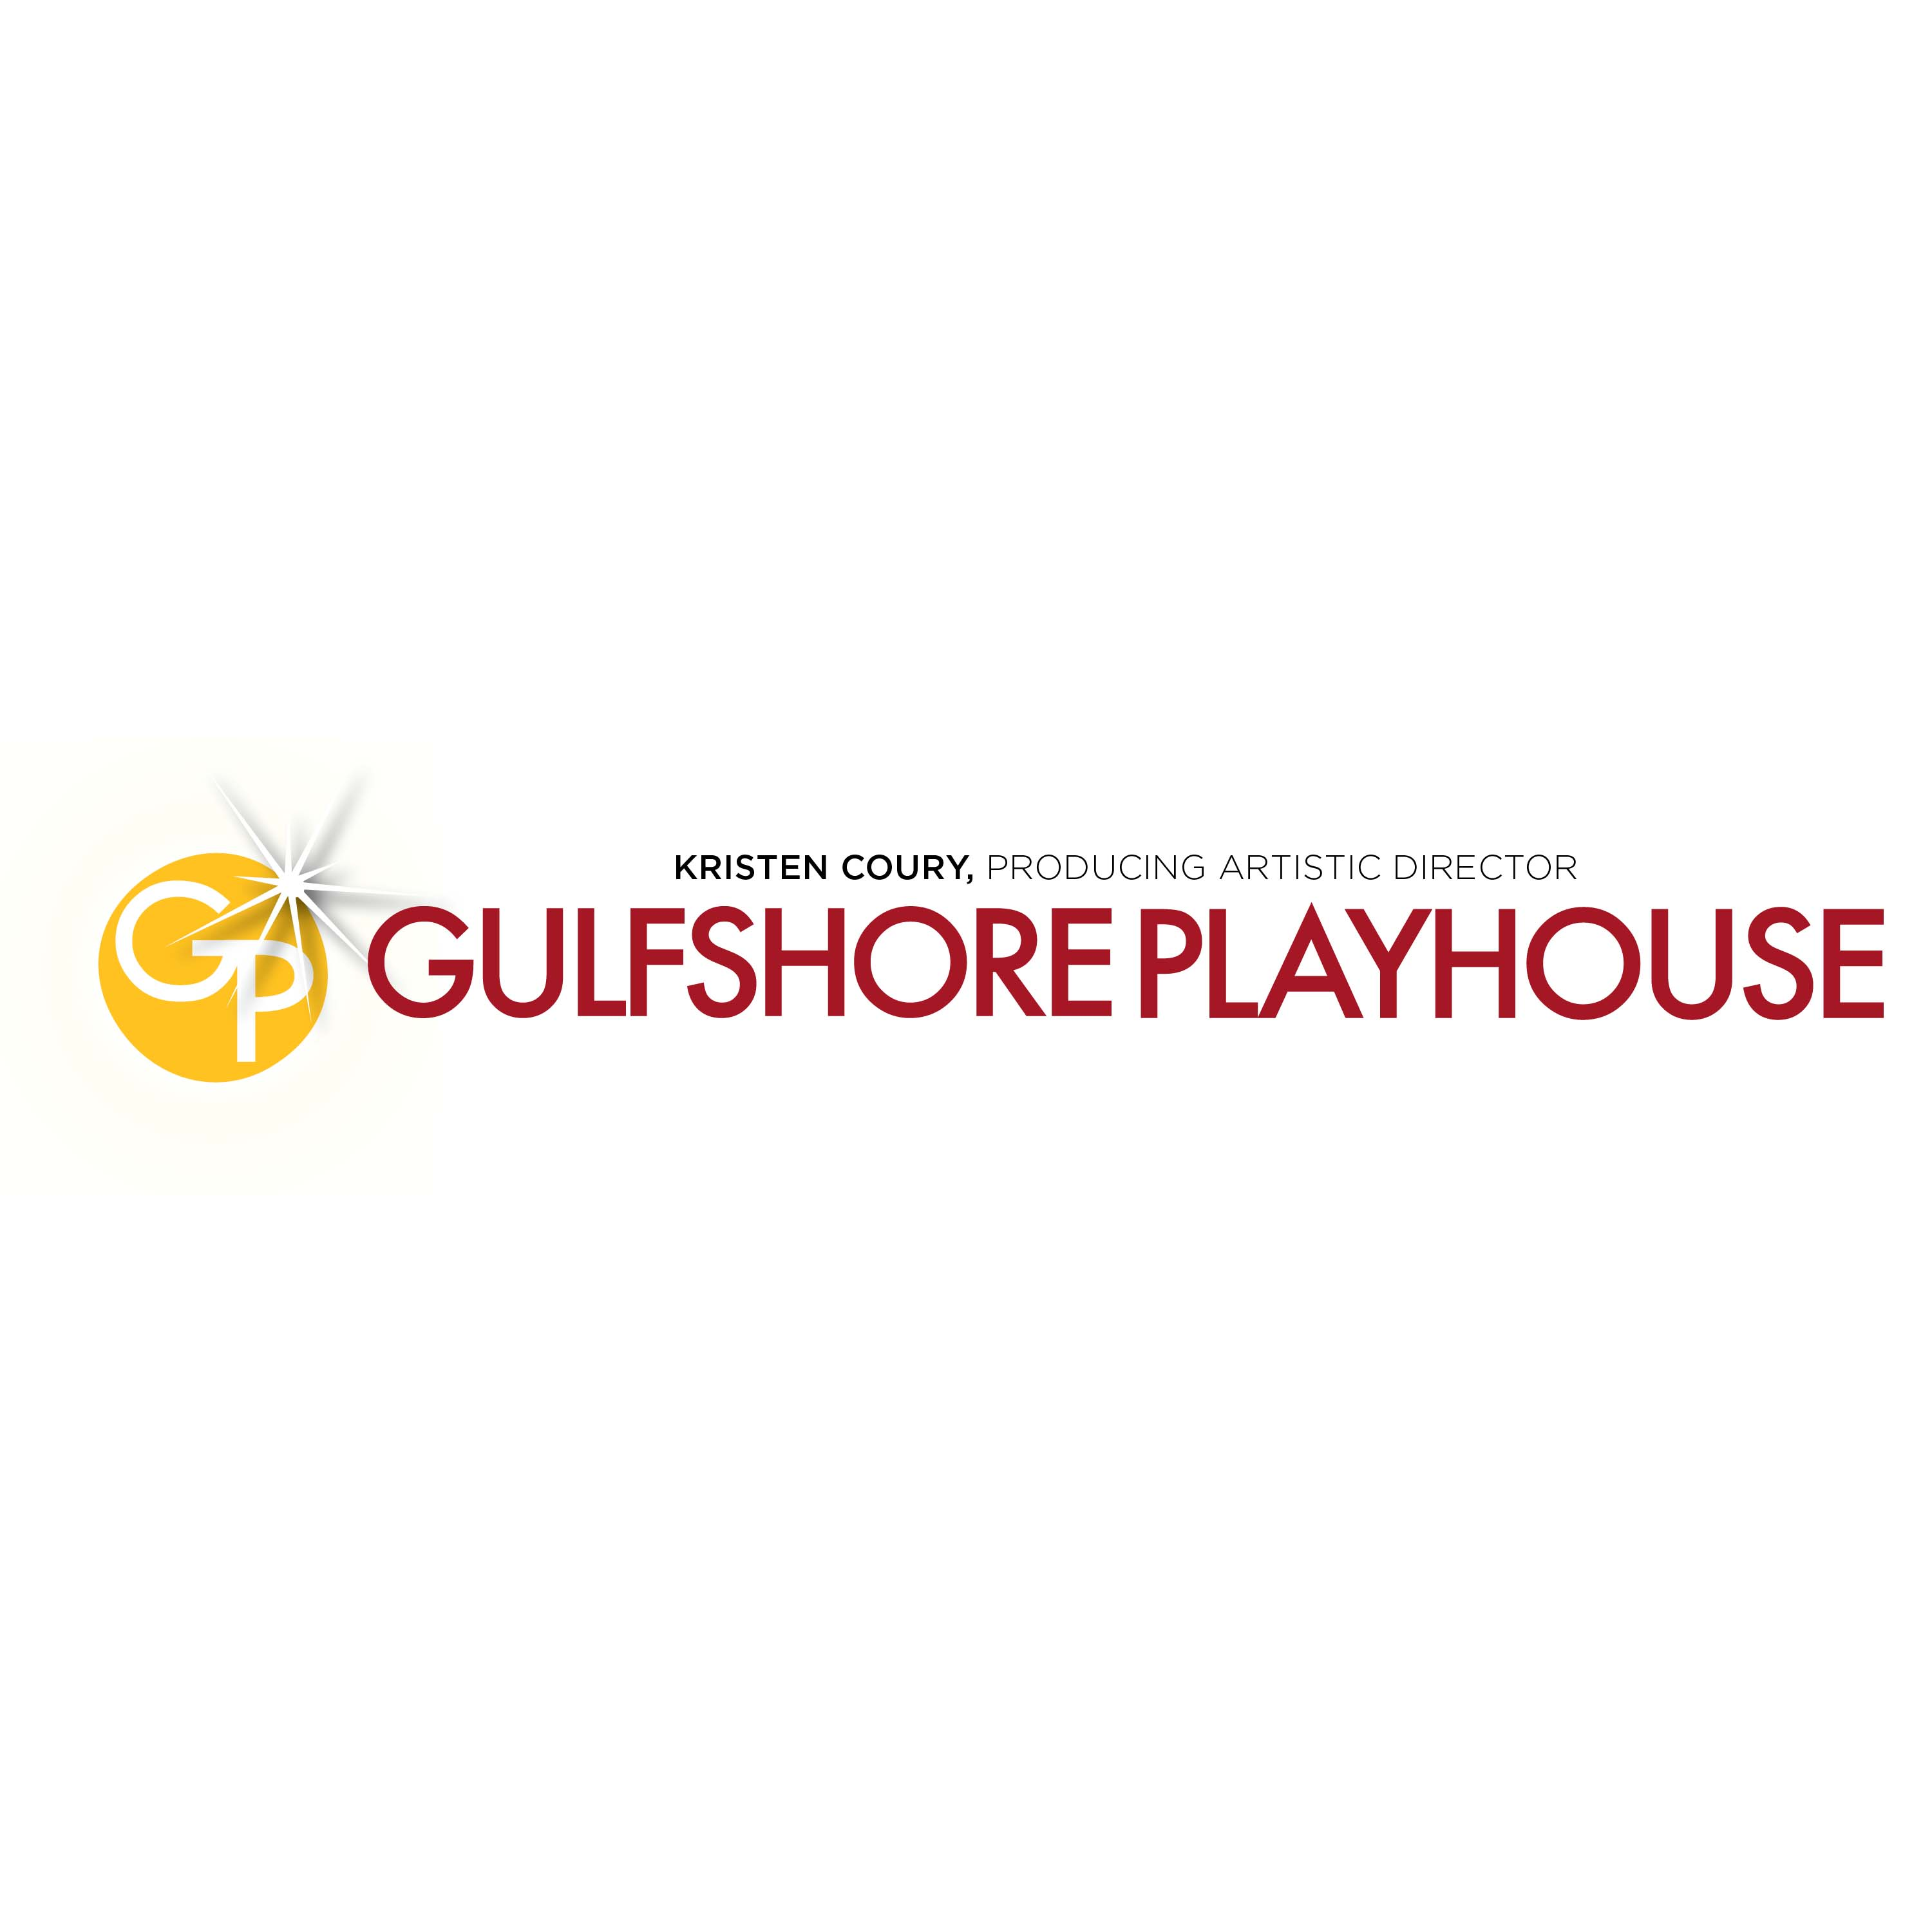 Gulfshore Playhouse